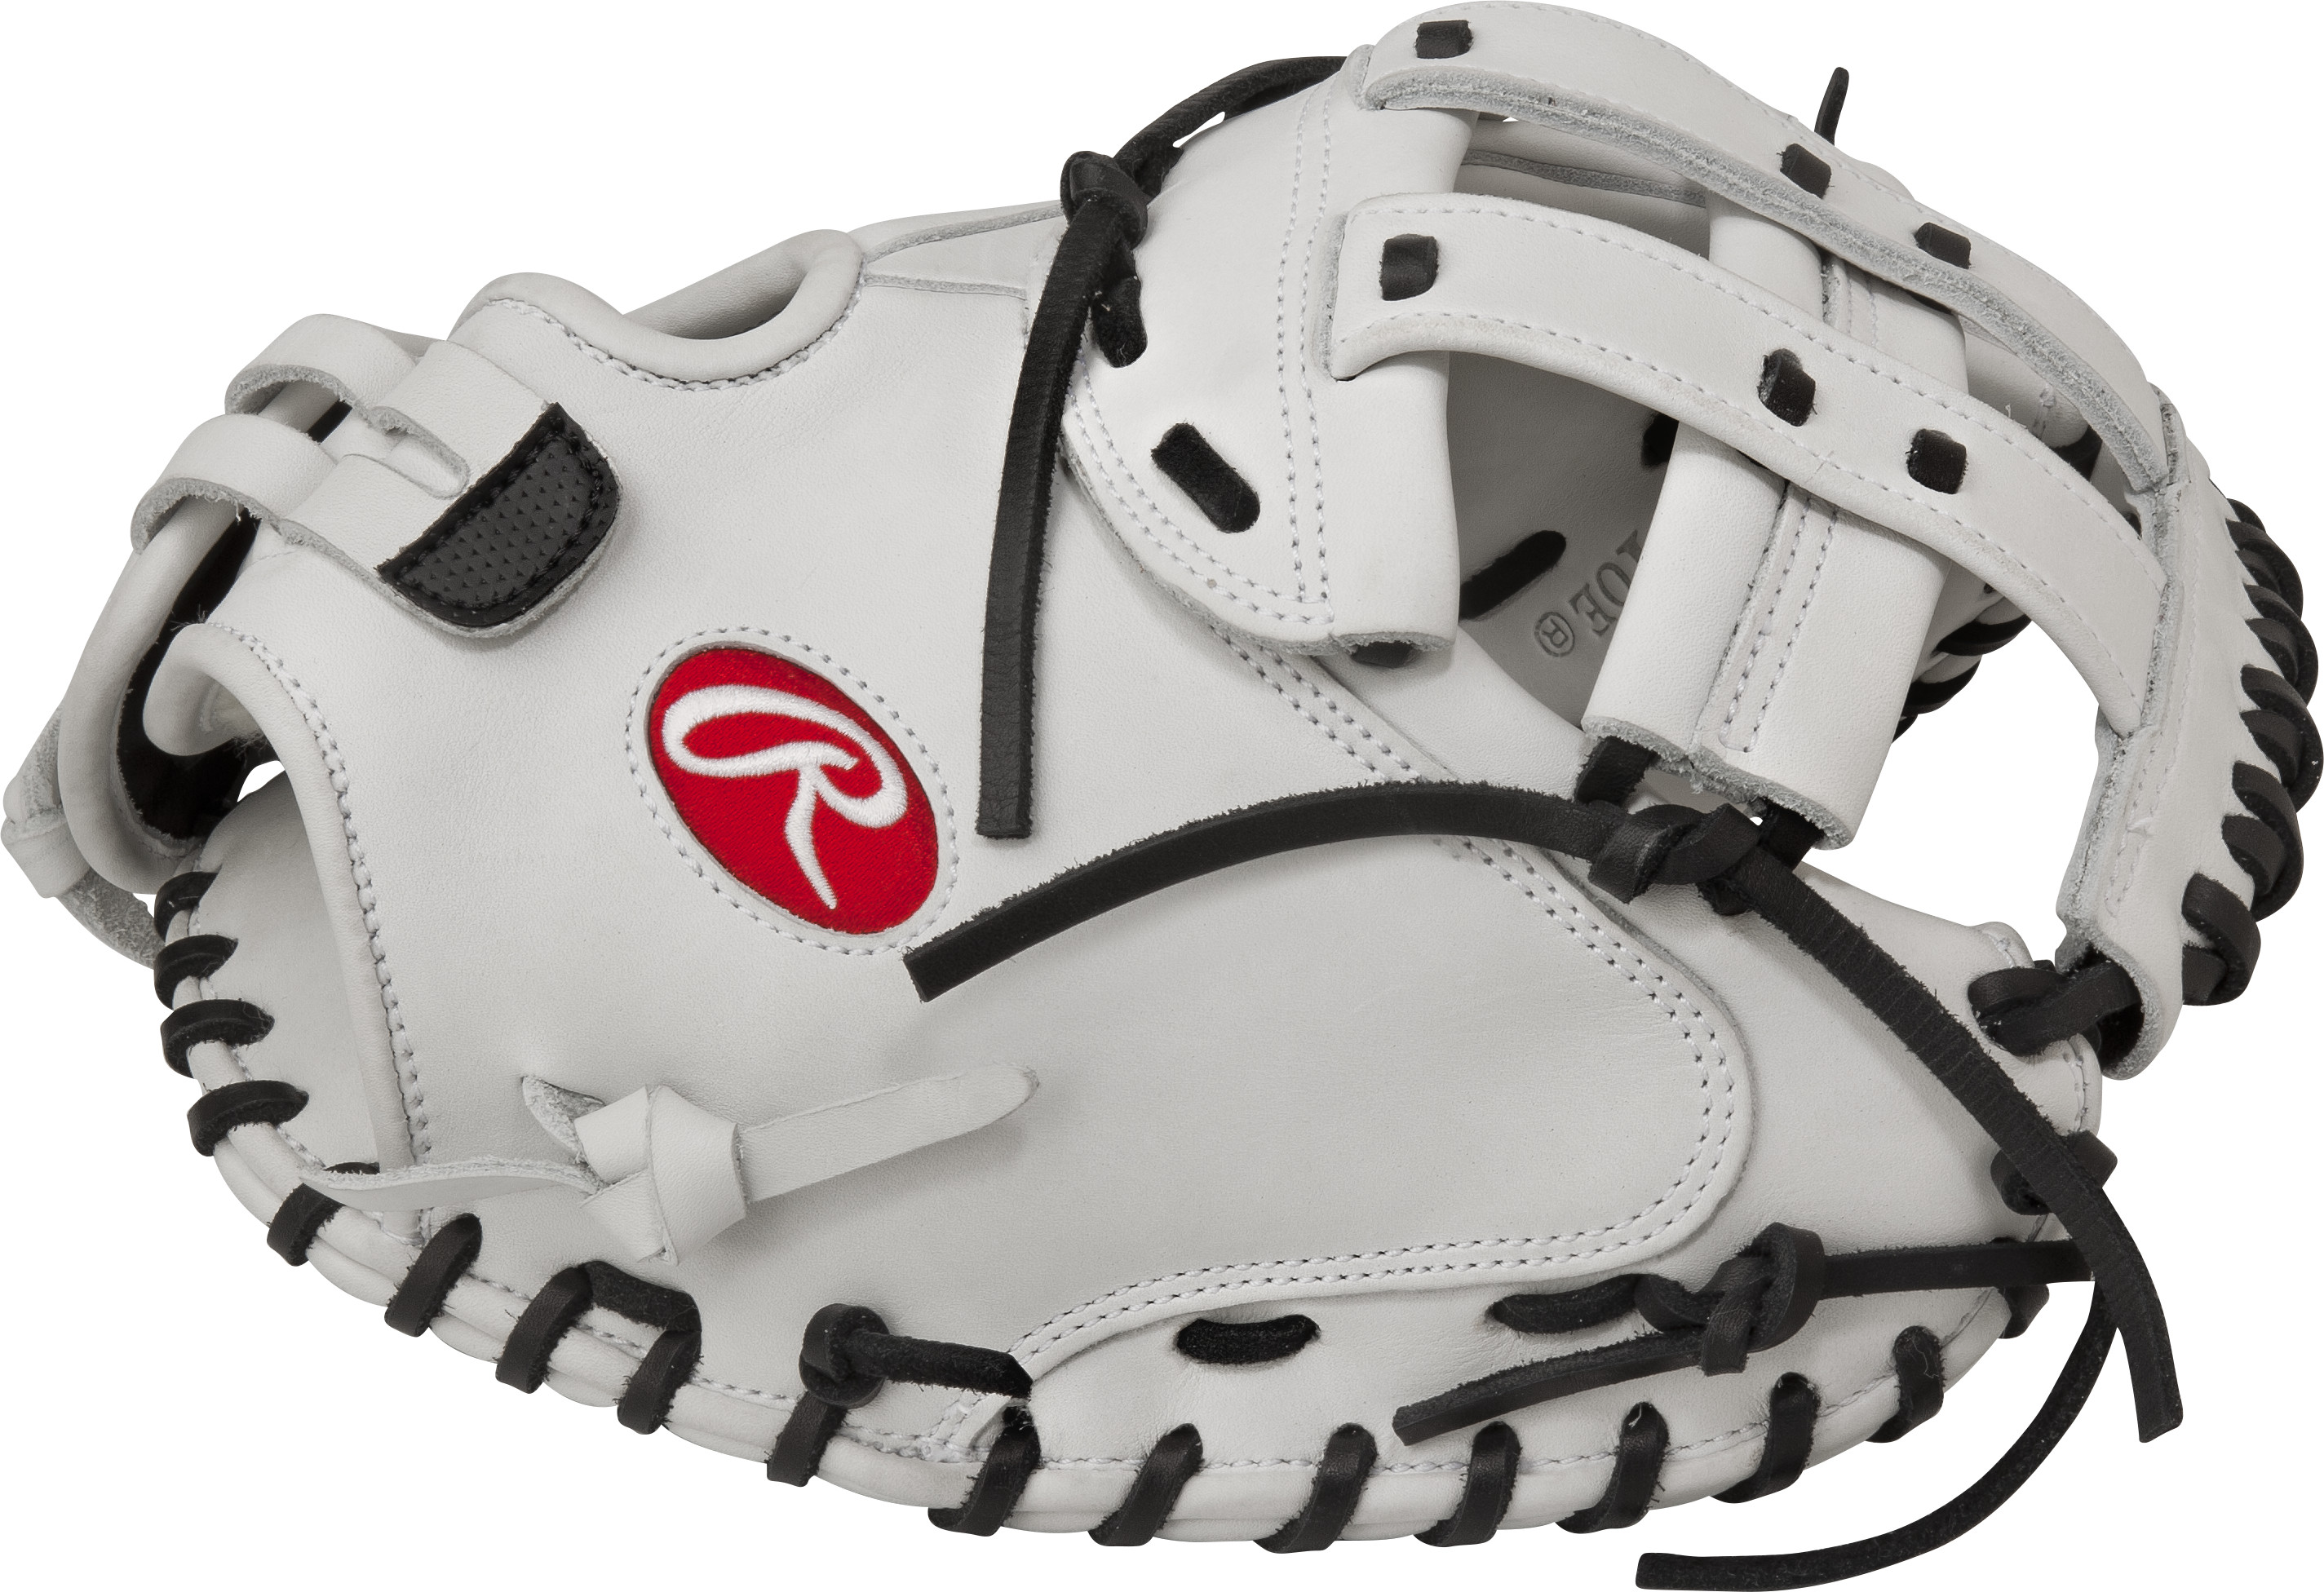 http://www.bestbatdeals.com/images/gloves/rawlings/RLACM34_thumb.jpg